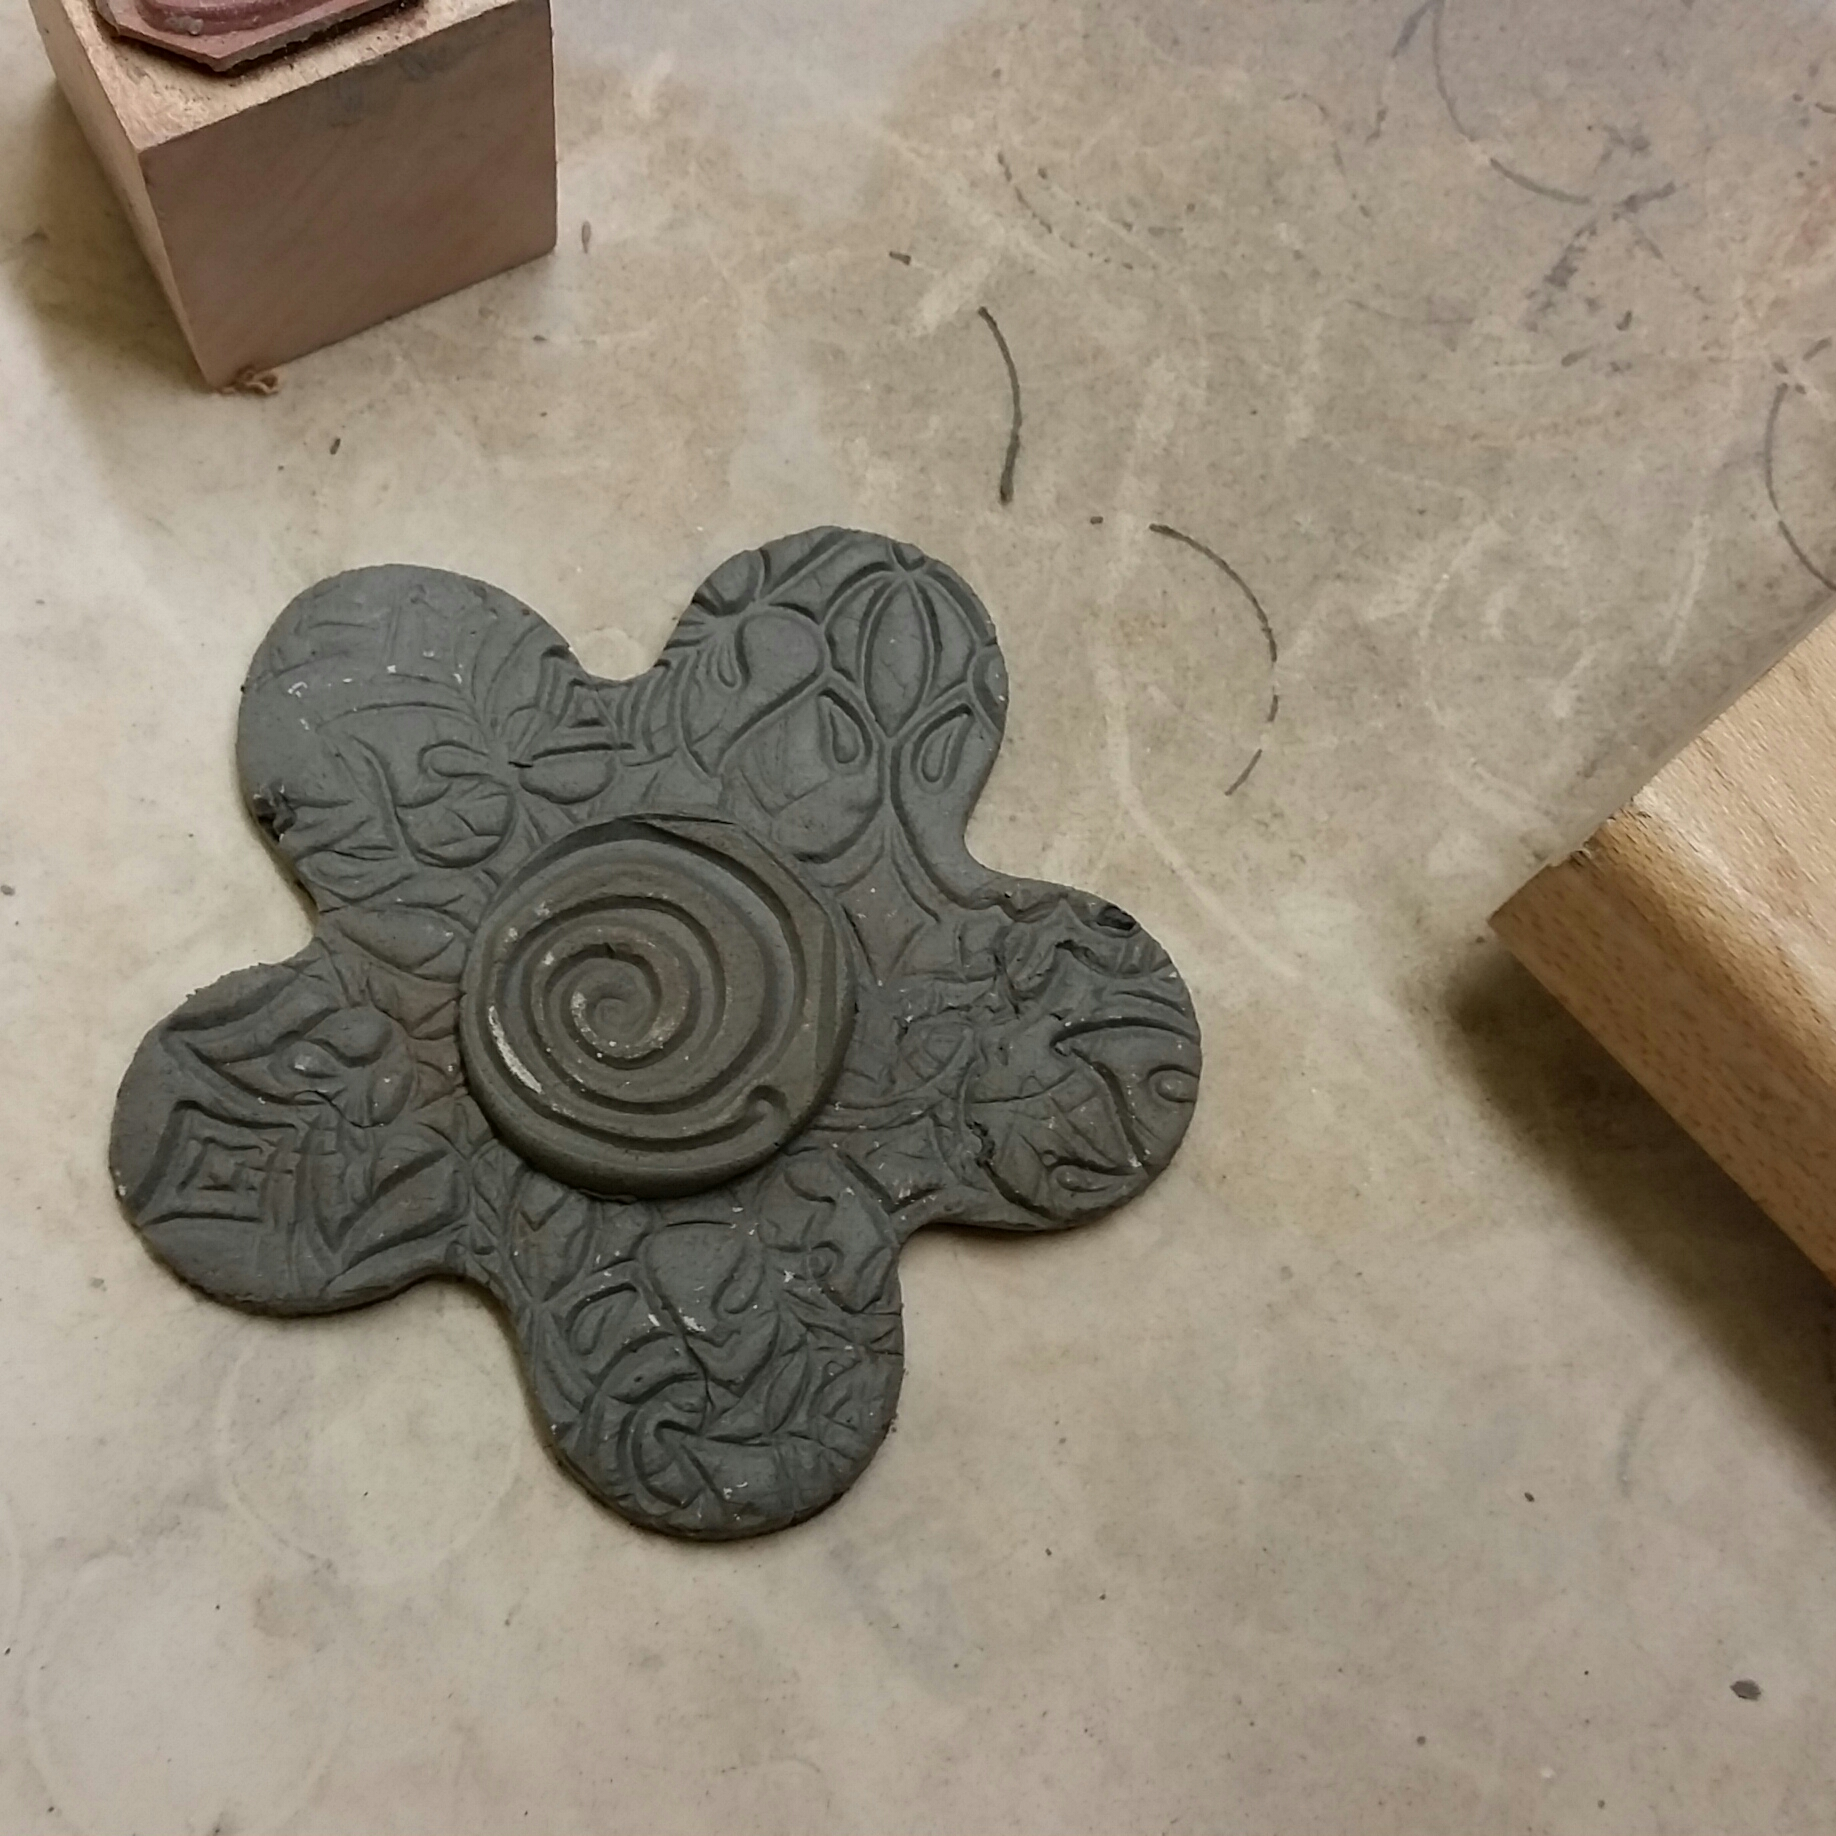 So, I did create a group of clay flowers with a lots of texture using new stamps I found at the thrift shop.